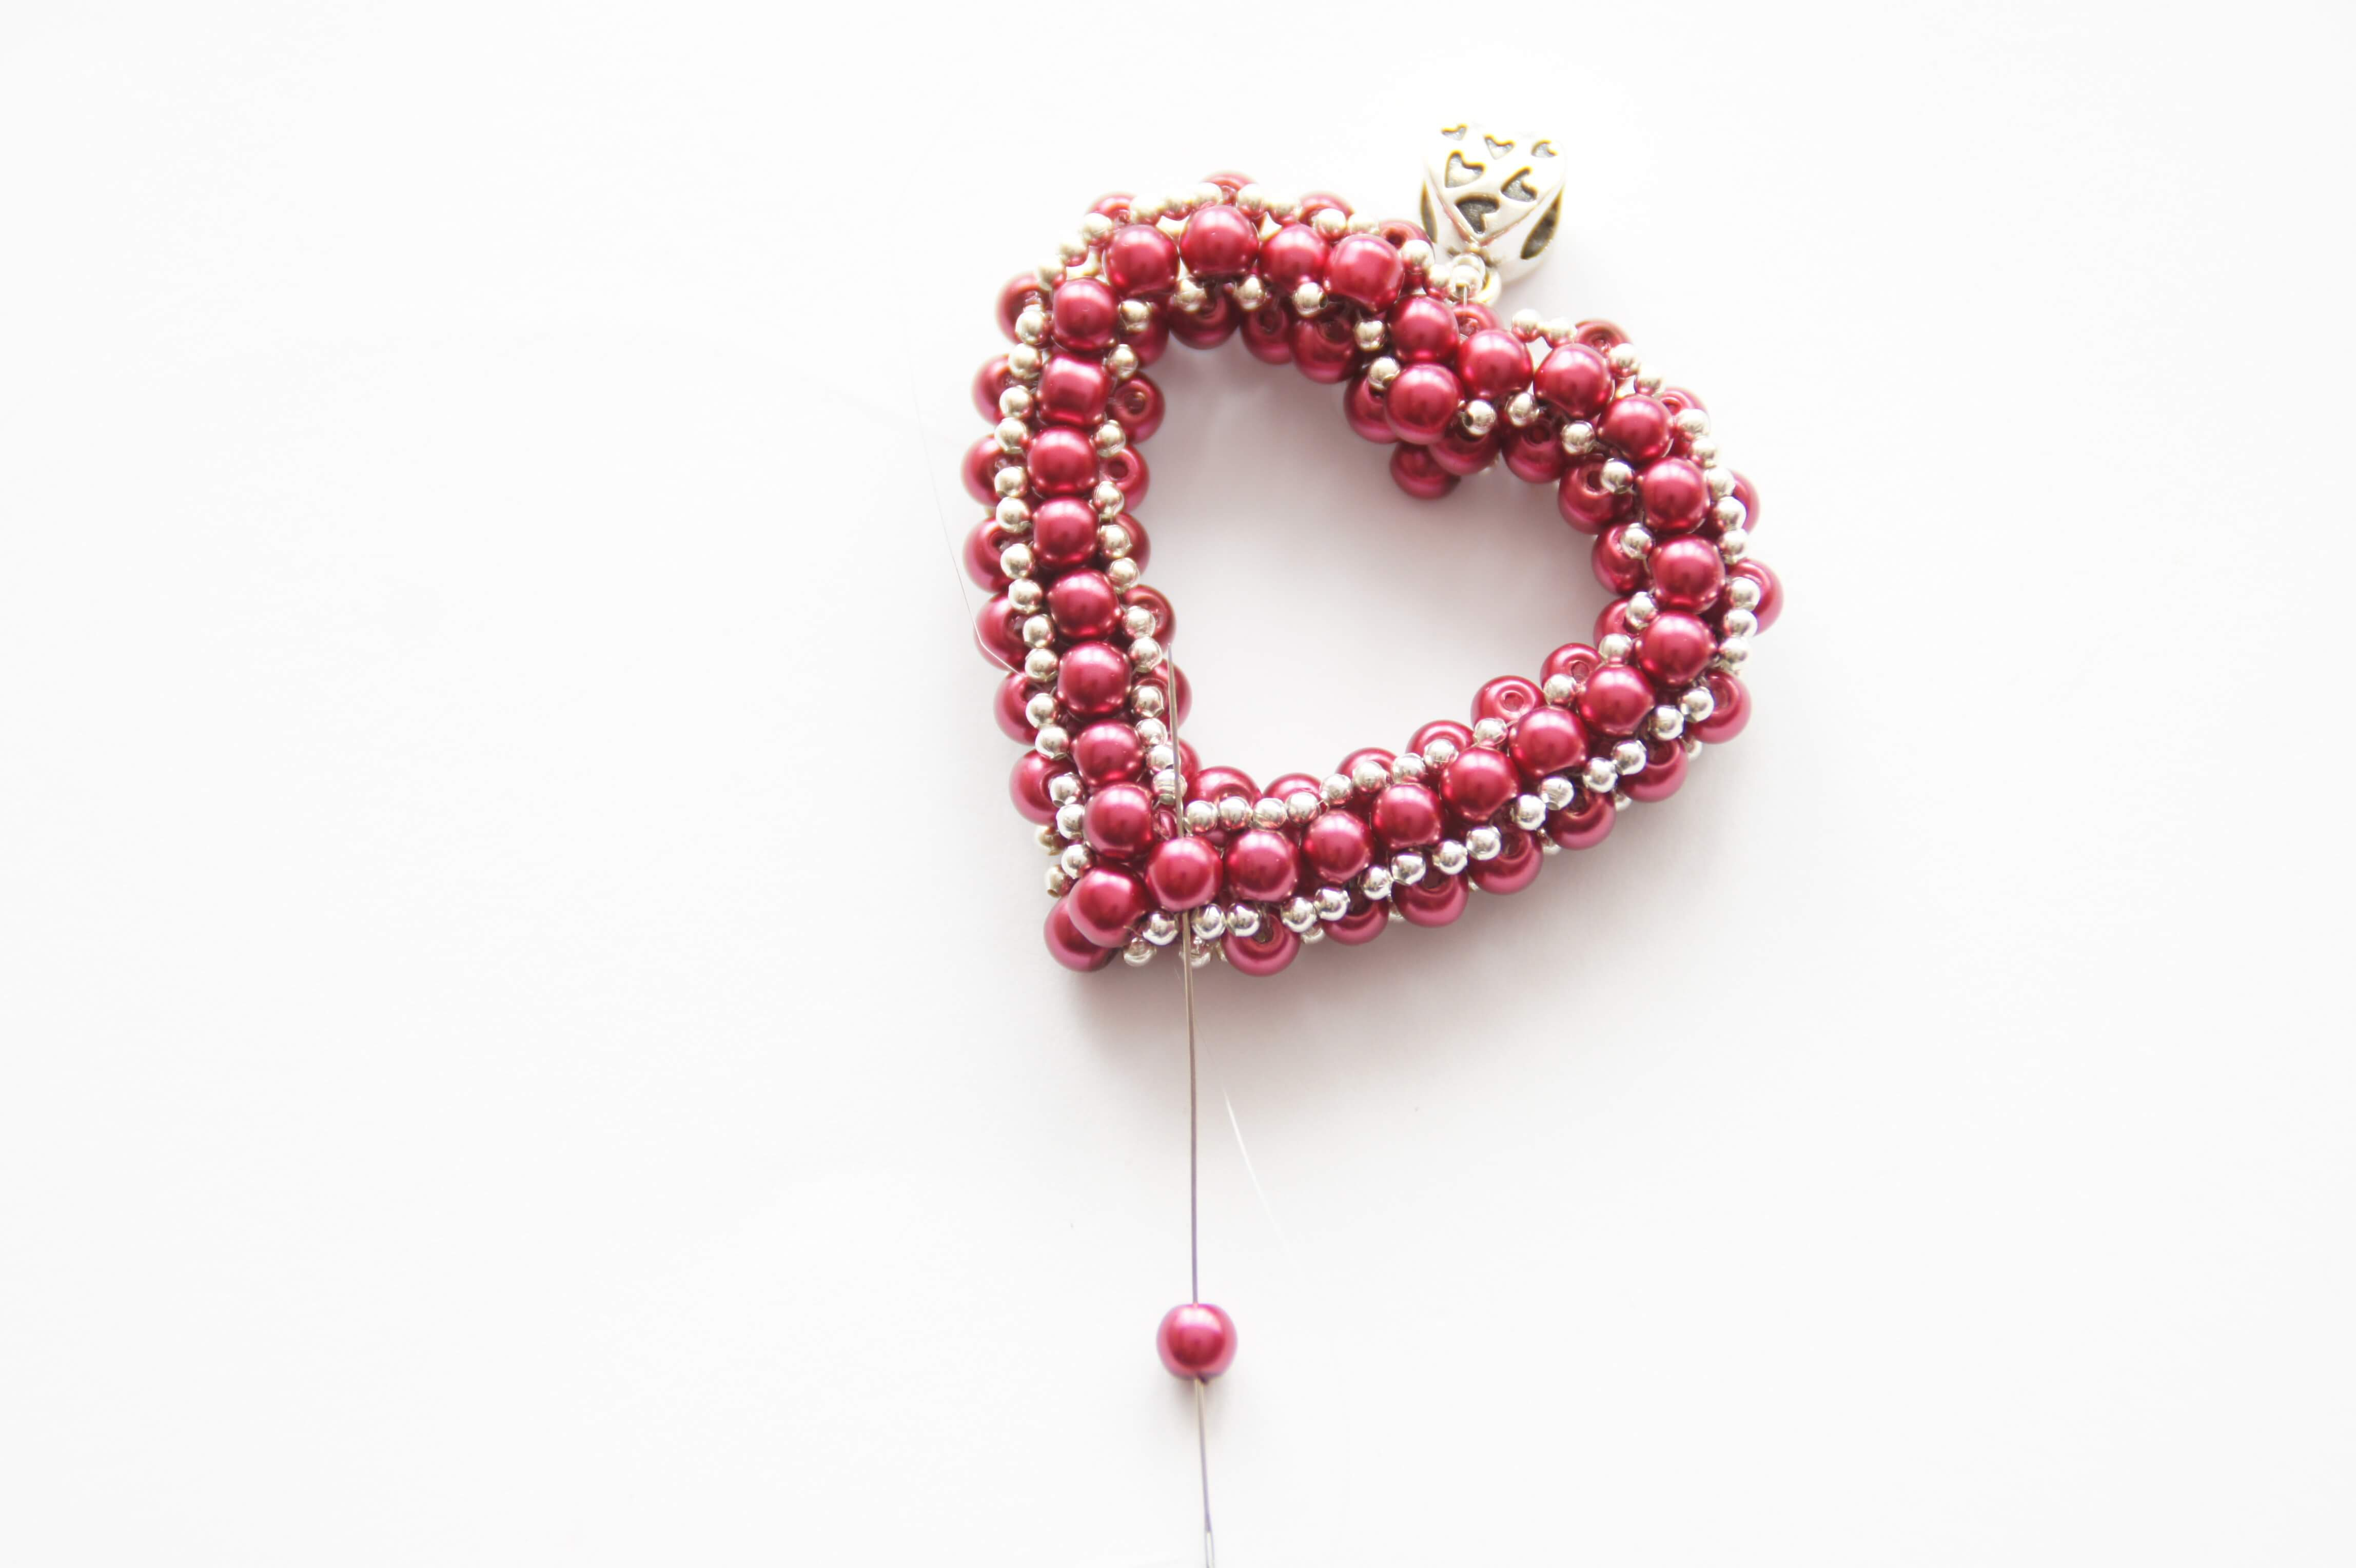 How To Make A Beaded Heart – Jewellery Making Tutorial (View 10 of 25)